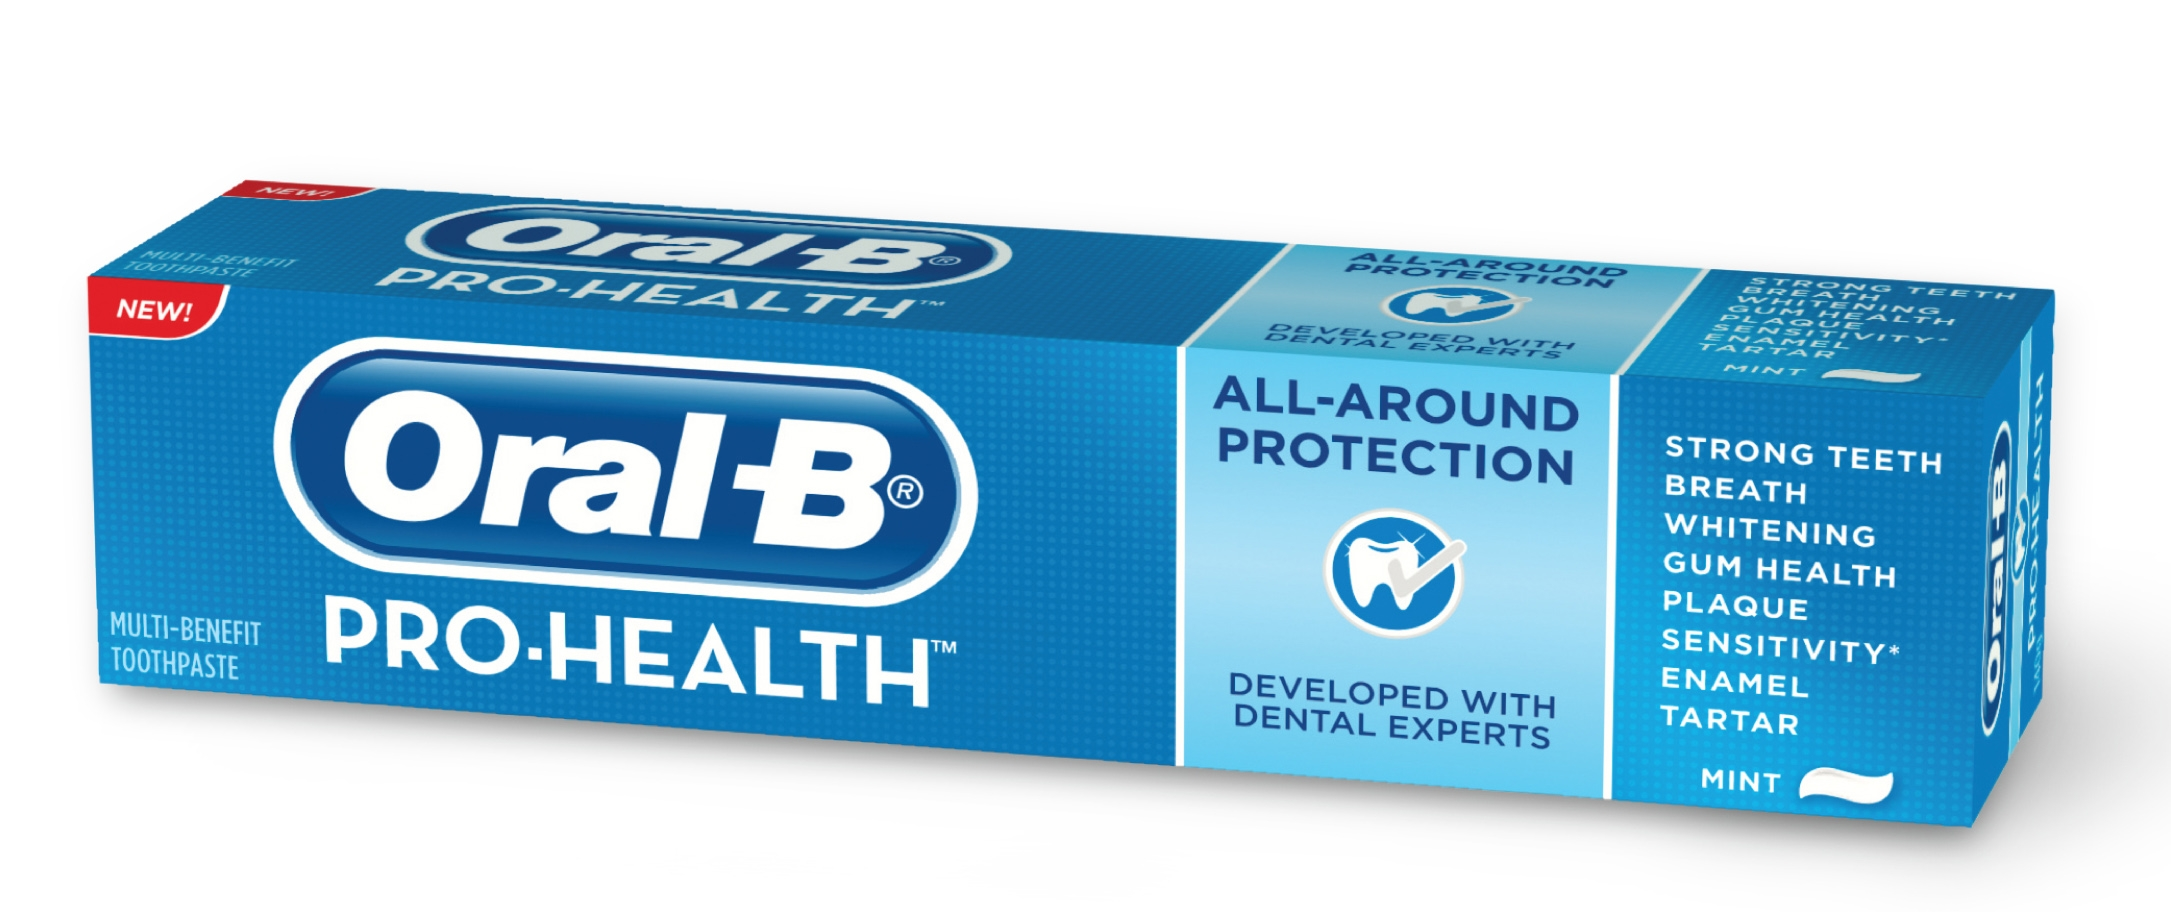 Review: Is Oral B Pro Health A Multi-Benefit Toothpaste?